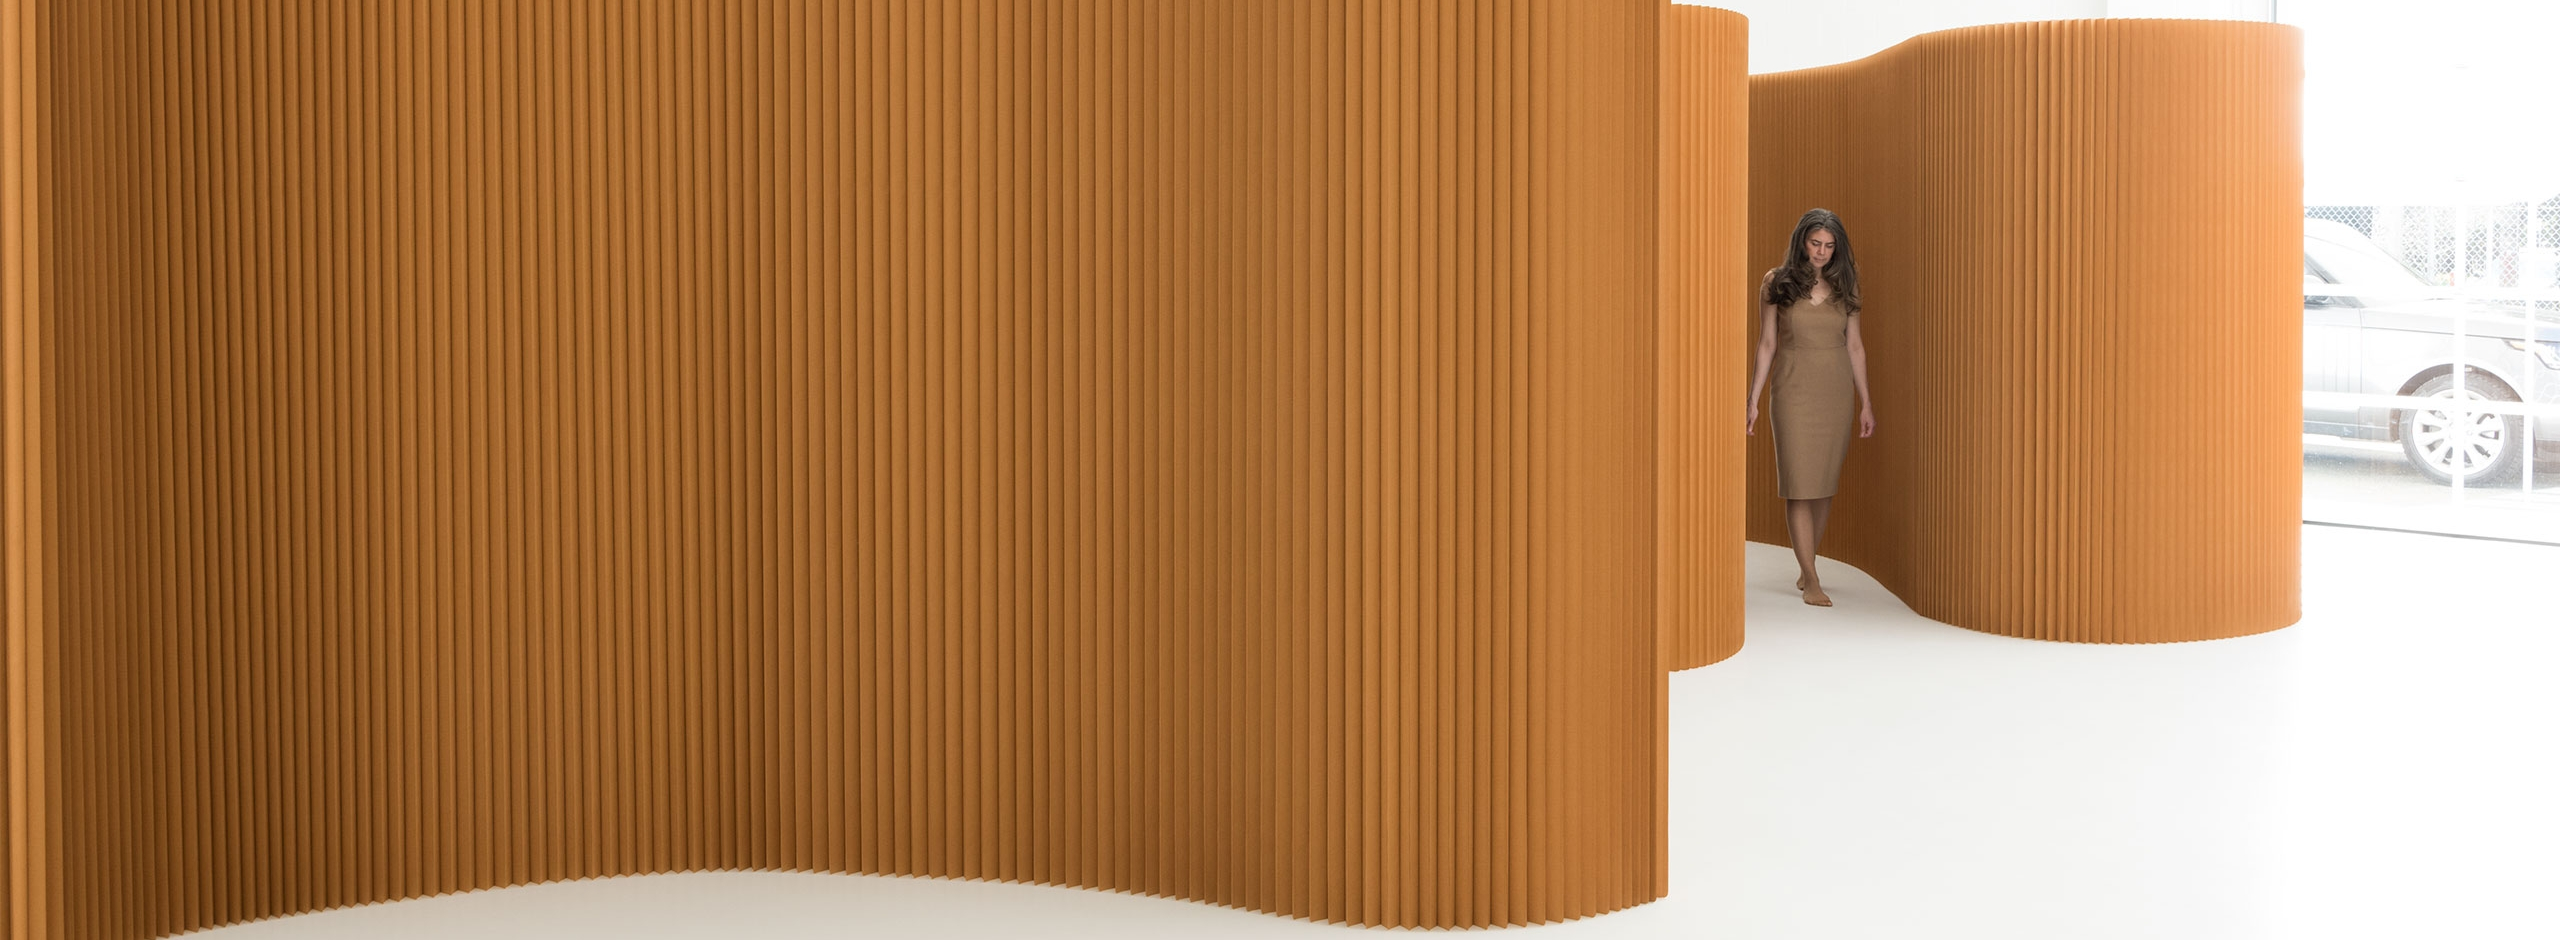 softwall acoustic partitions that can be made into any shape, these paper room dividers make for sculptural back drops as well as practical privacy screens.